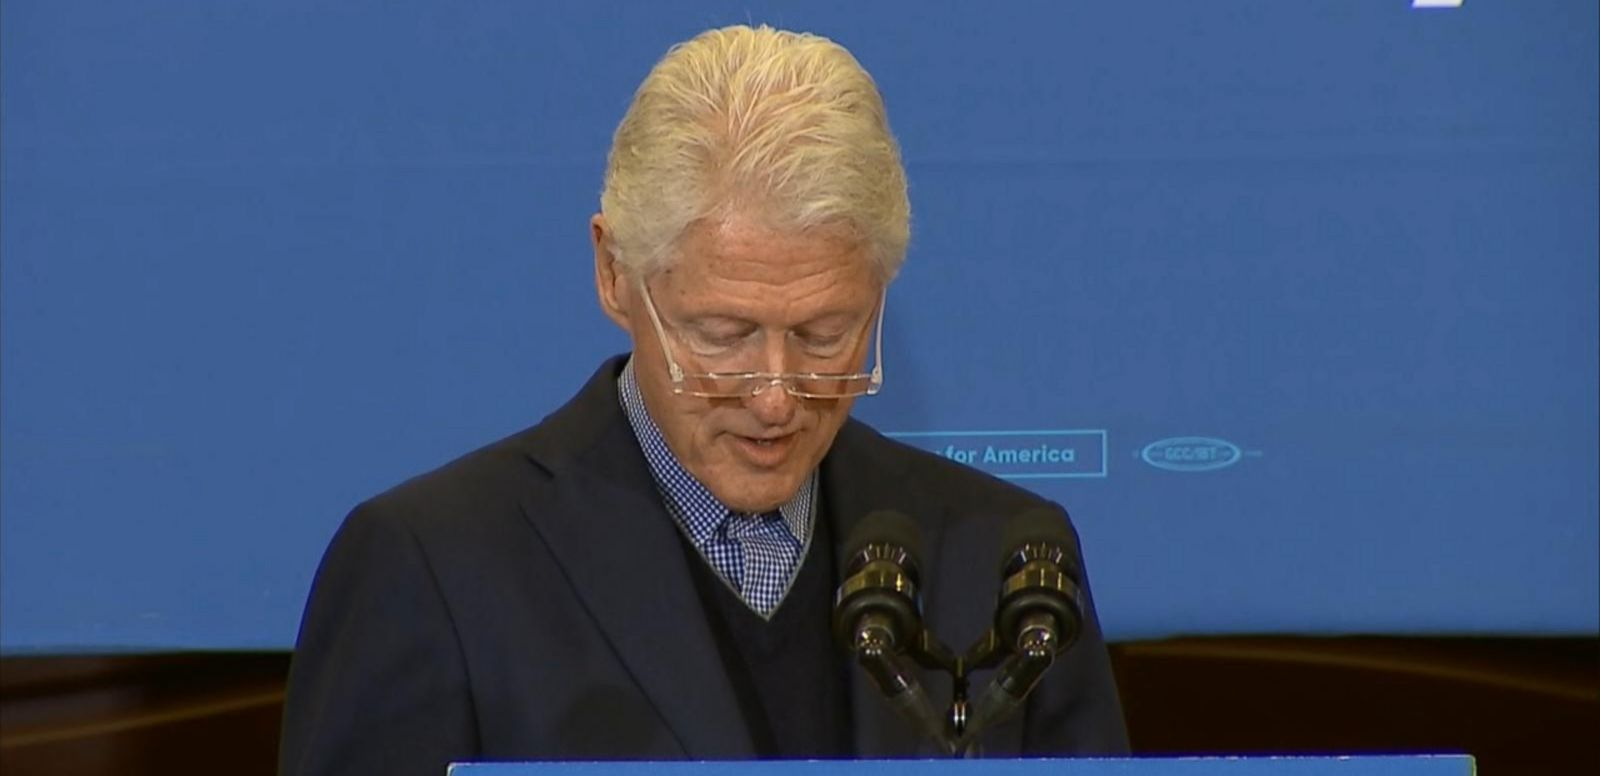 VIDEO: Phone Call From Hillary Interrupts Bill Clintons Speech